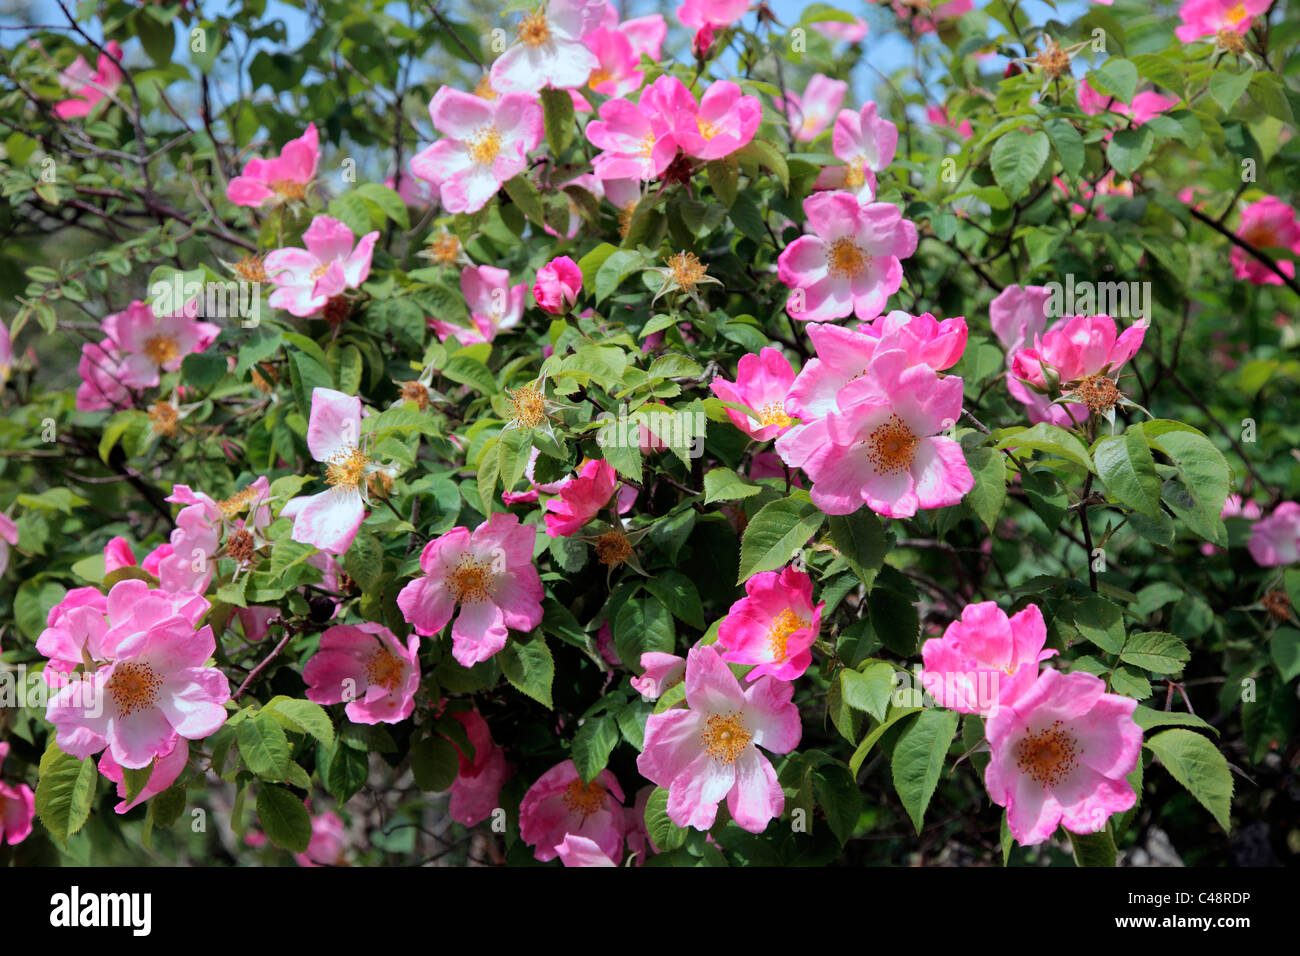 Rosa 'Complicata' AGM Shrub Rose - Stock Image